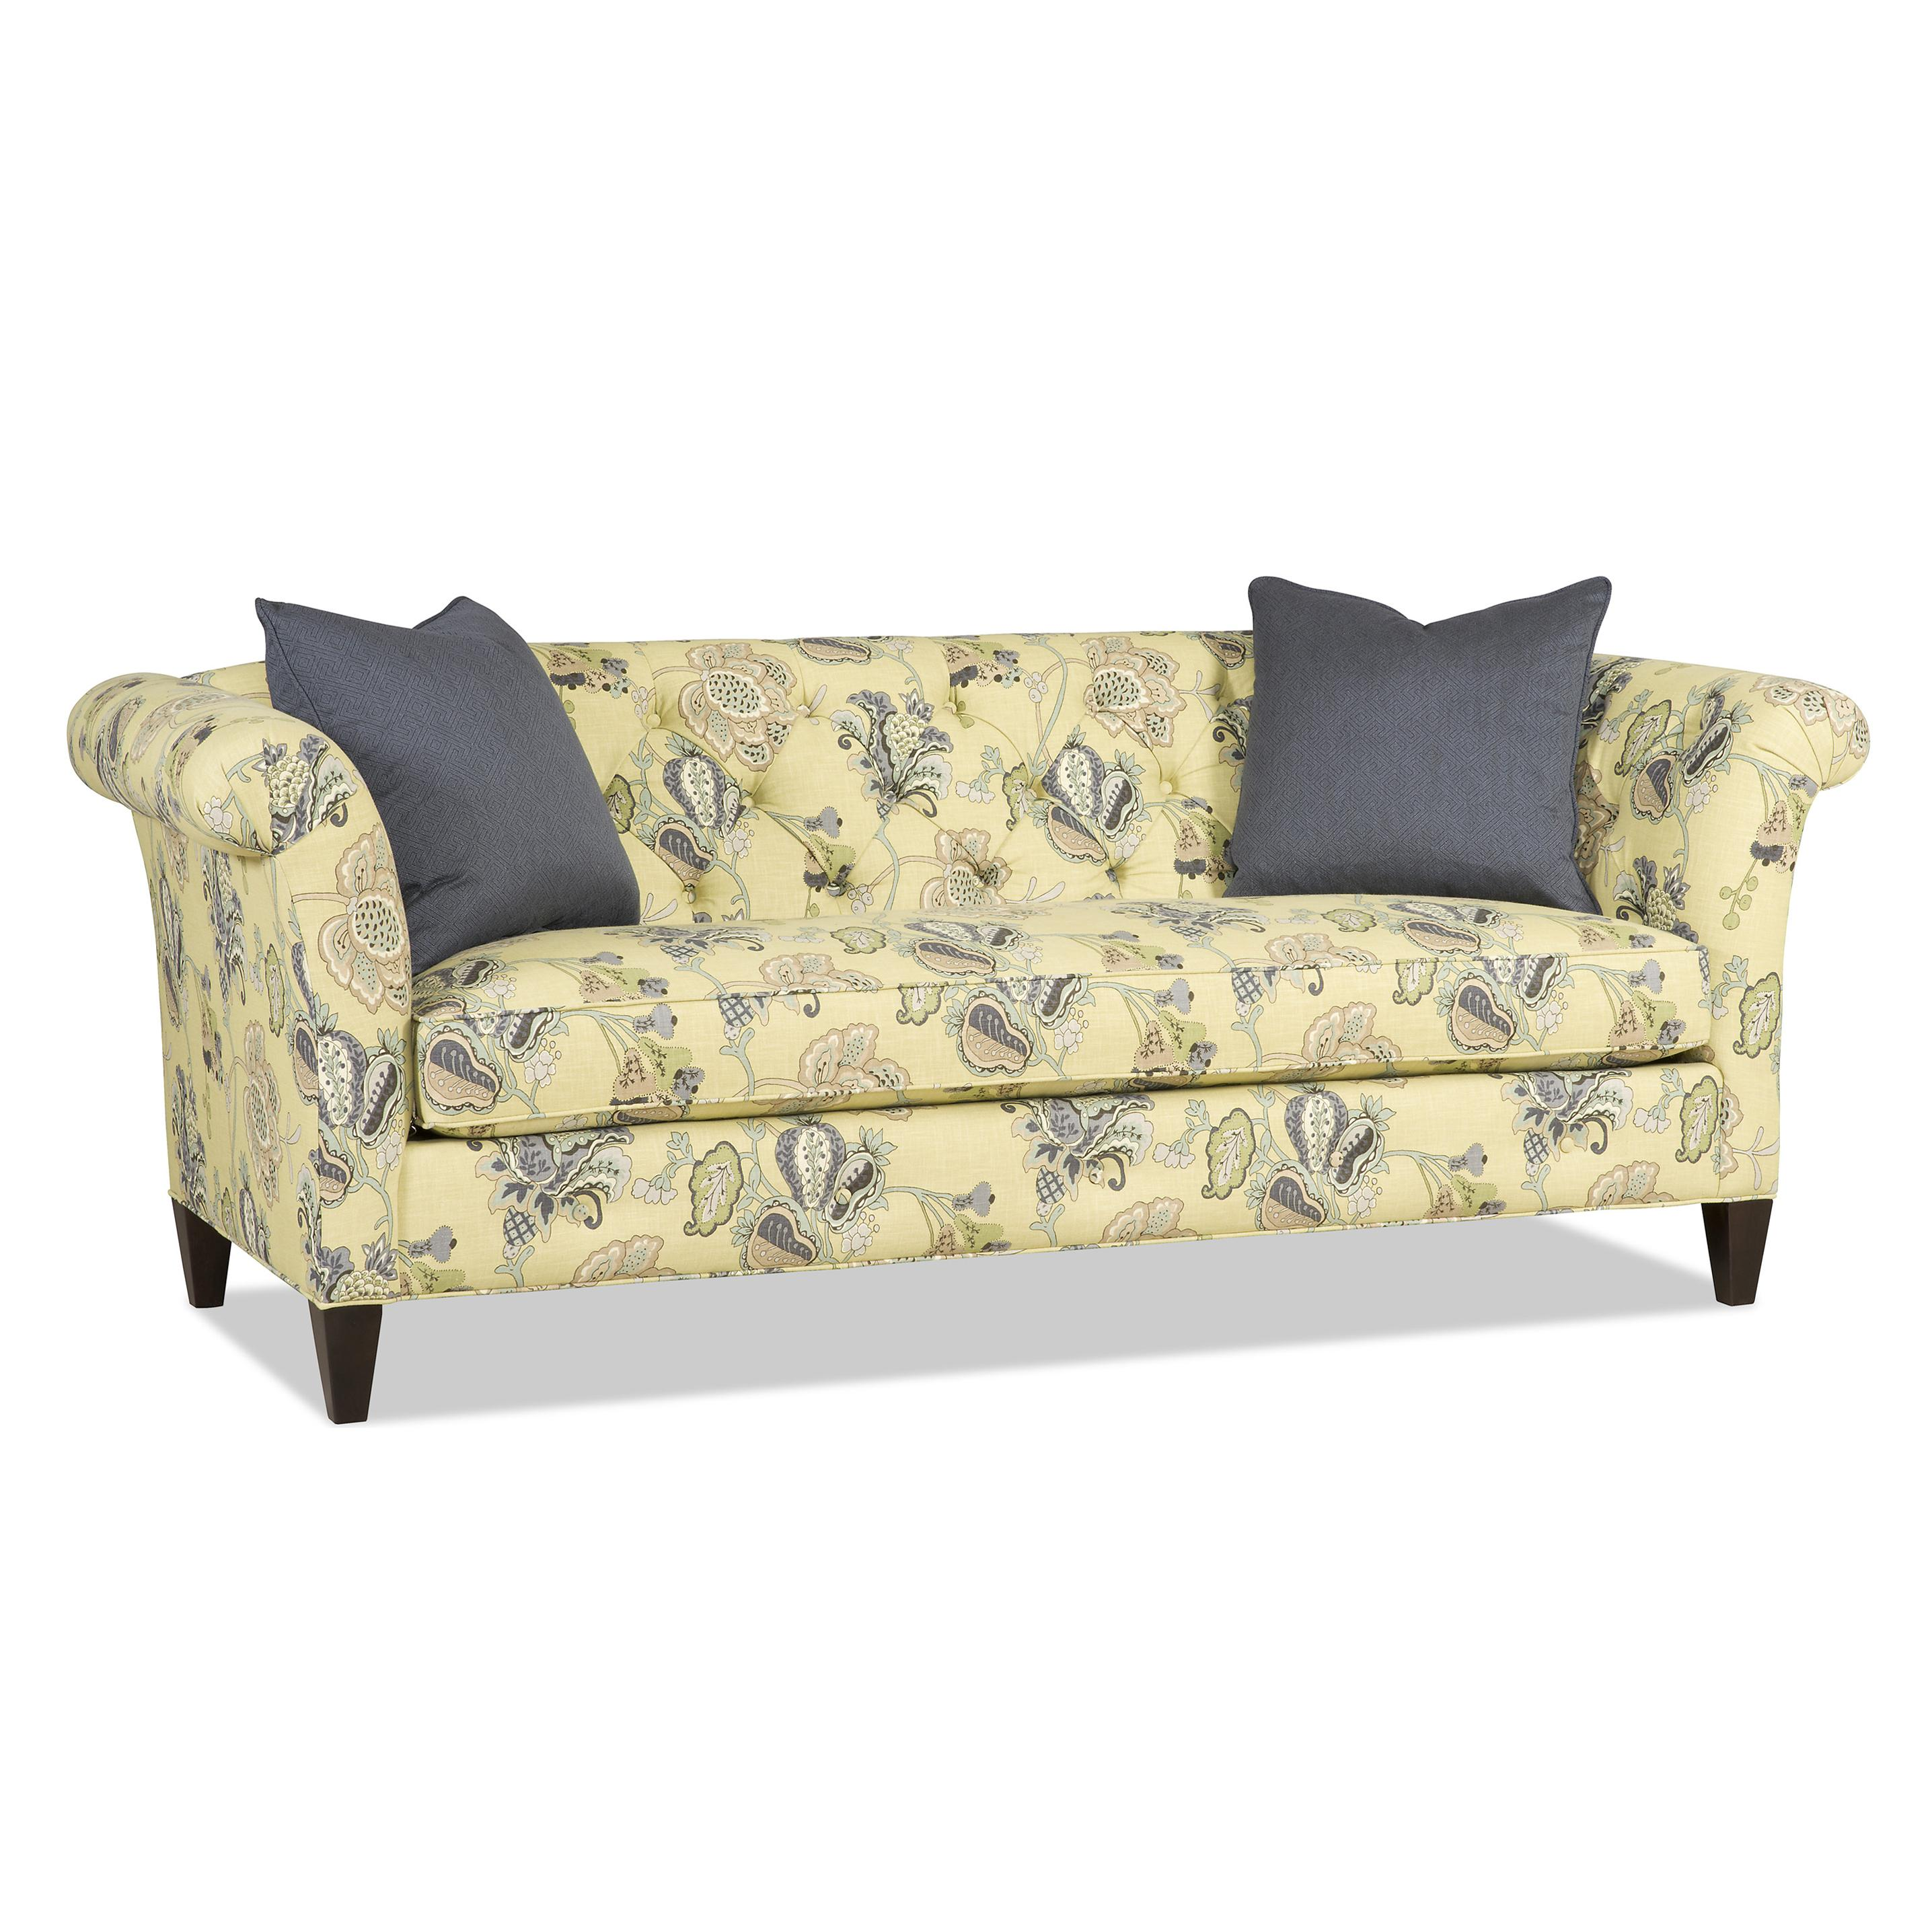 Sam Moore Astrid Traditional Bench Sofa With Tufted Back